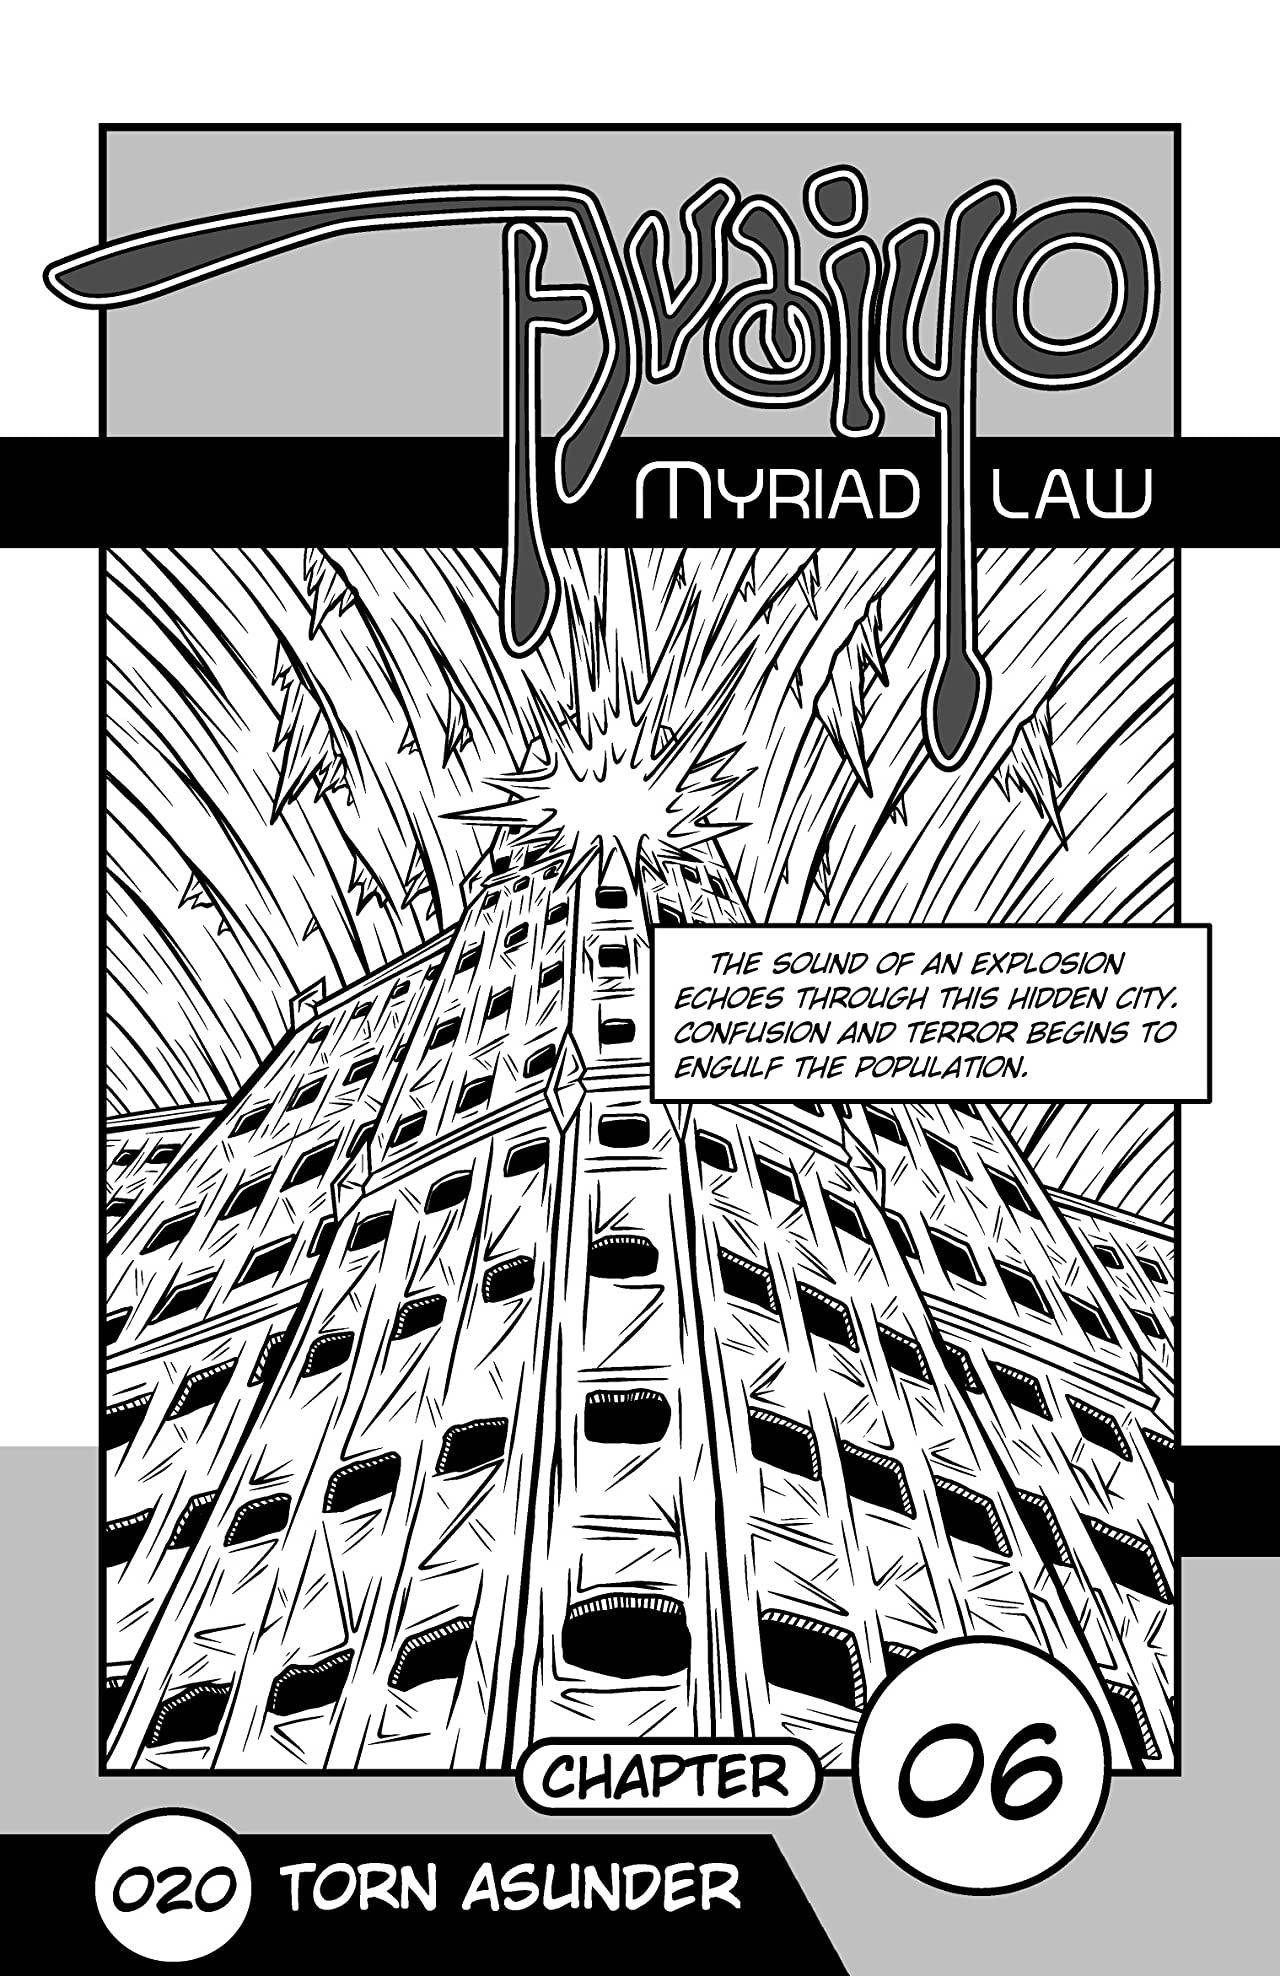 Avaiyo: Myriad Law #020